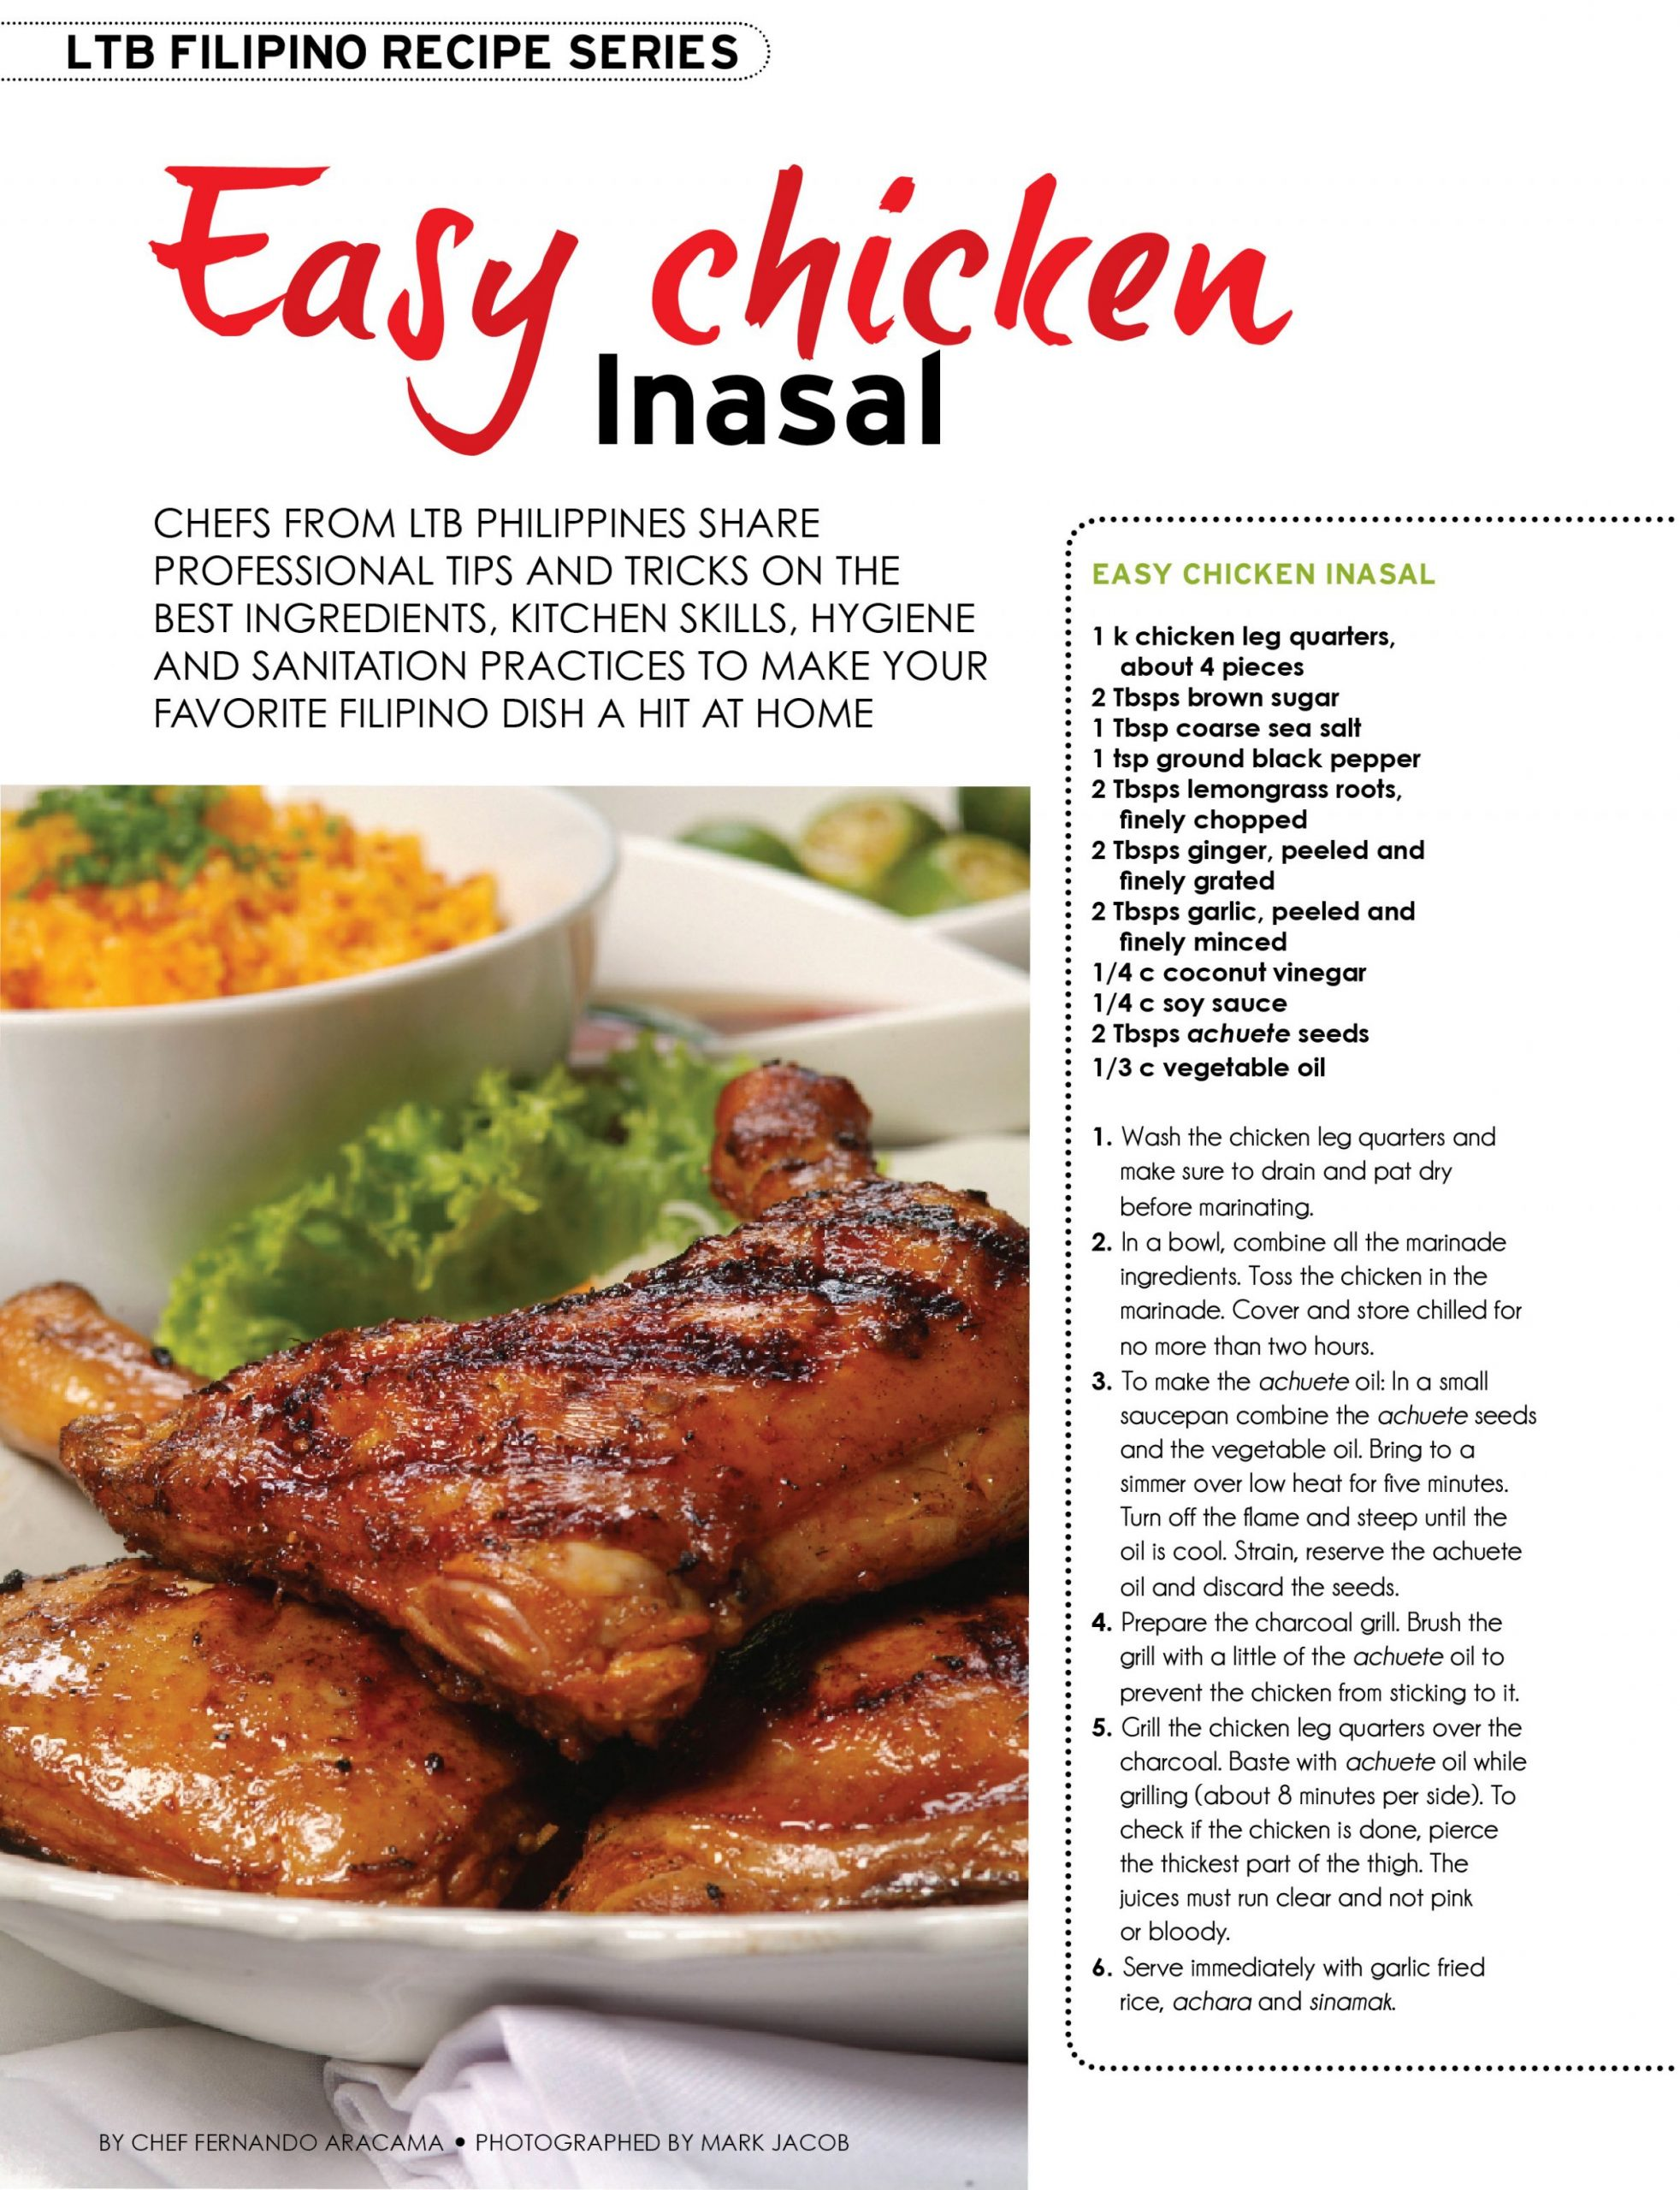 Easy Chicken Inasal Recipe | LTB Chefs Phils